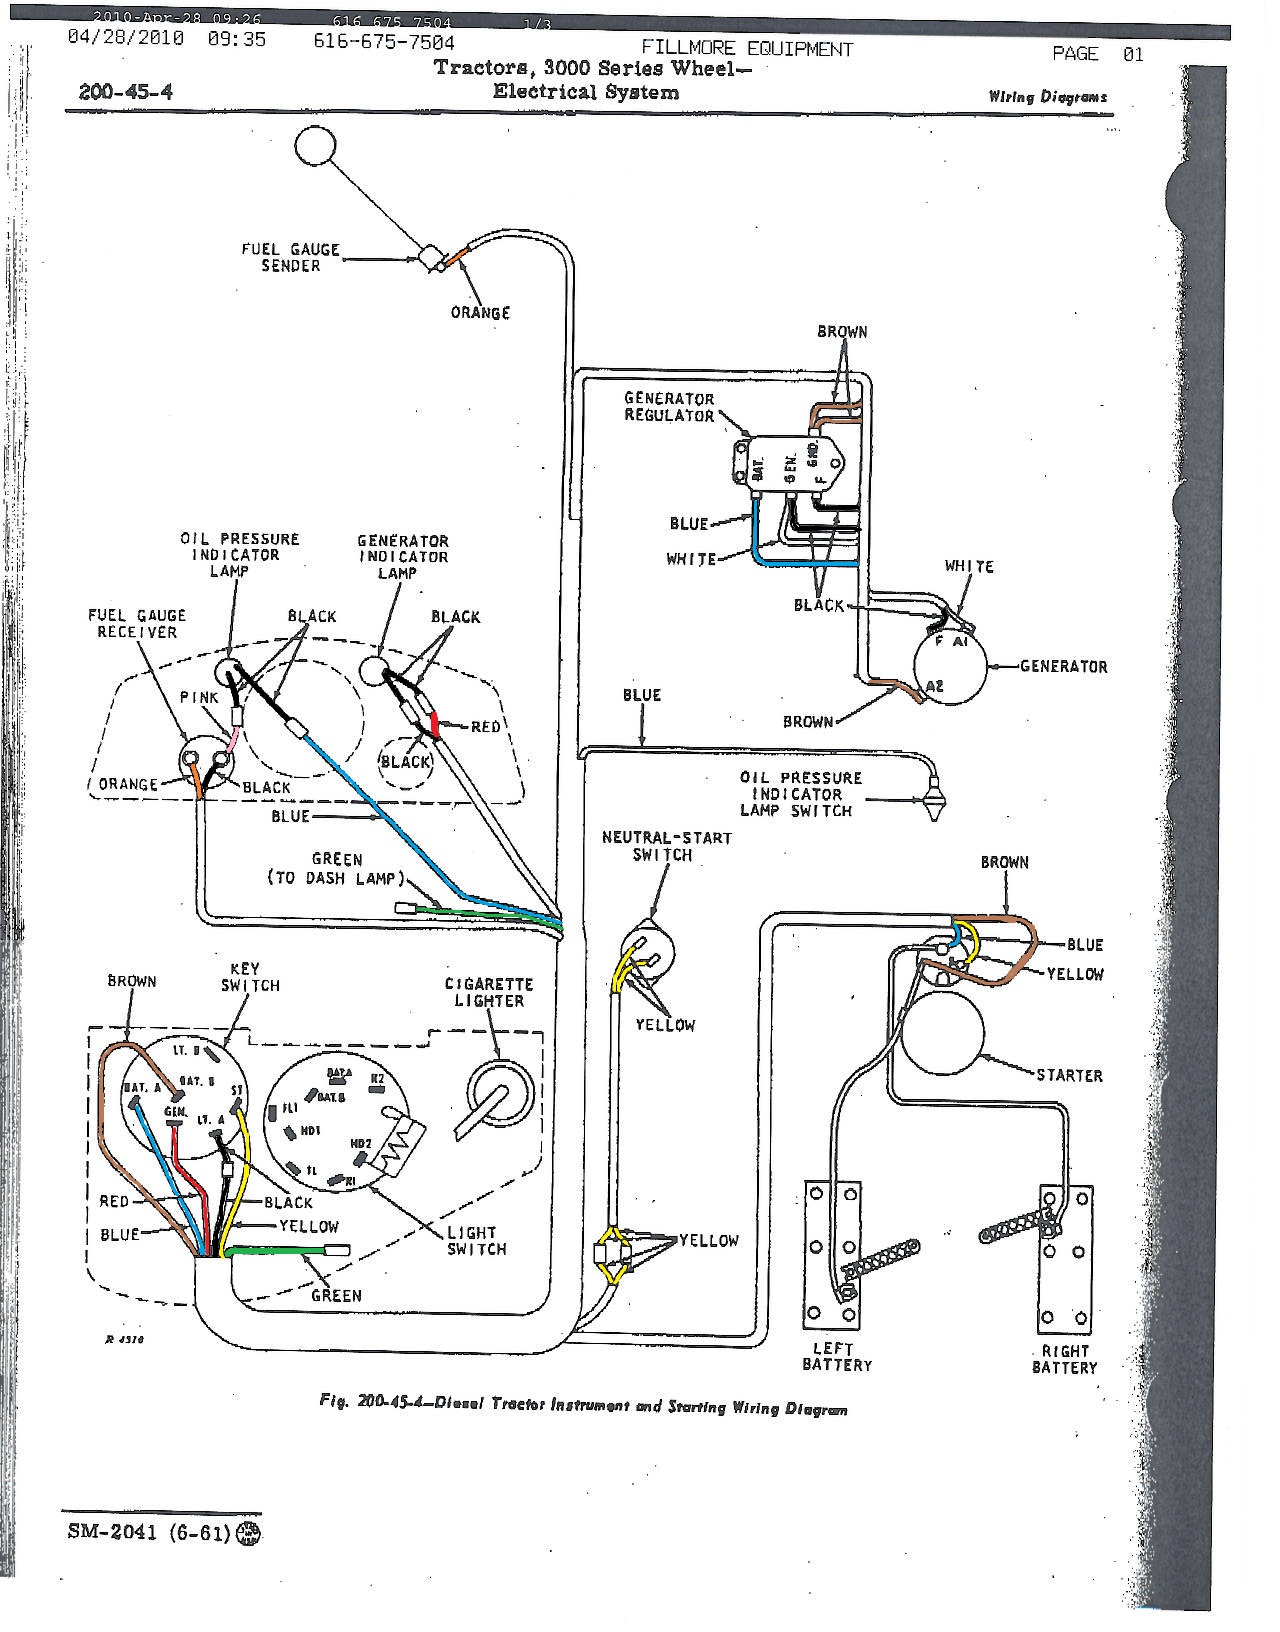 hight resolution of 3010 rh charliemckinley com kawasaki lawn mower engine diagram kawasaki fuel injected engine diagram